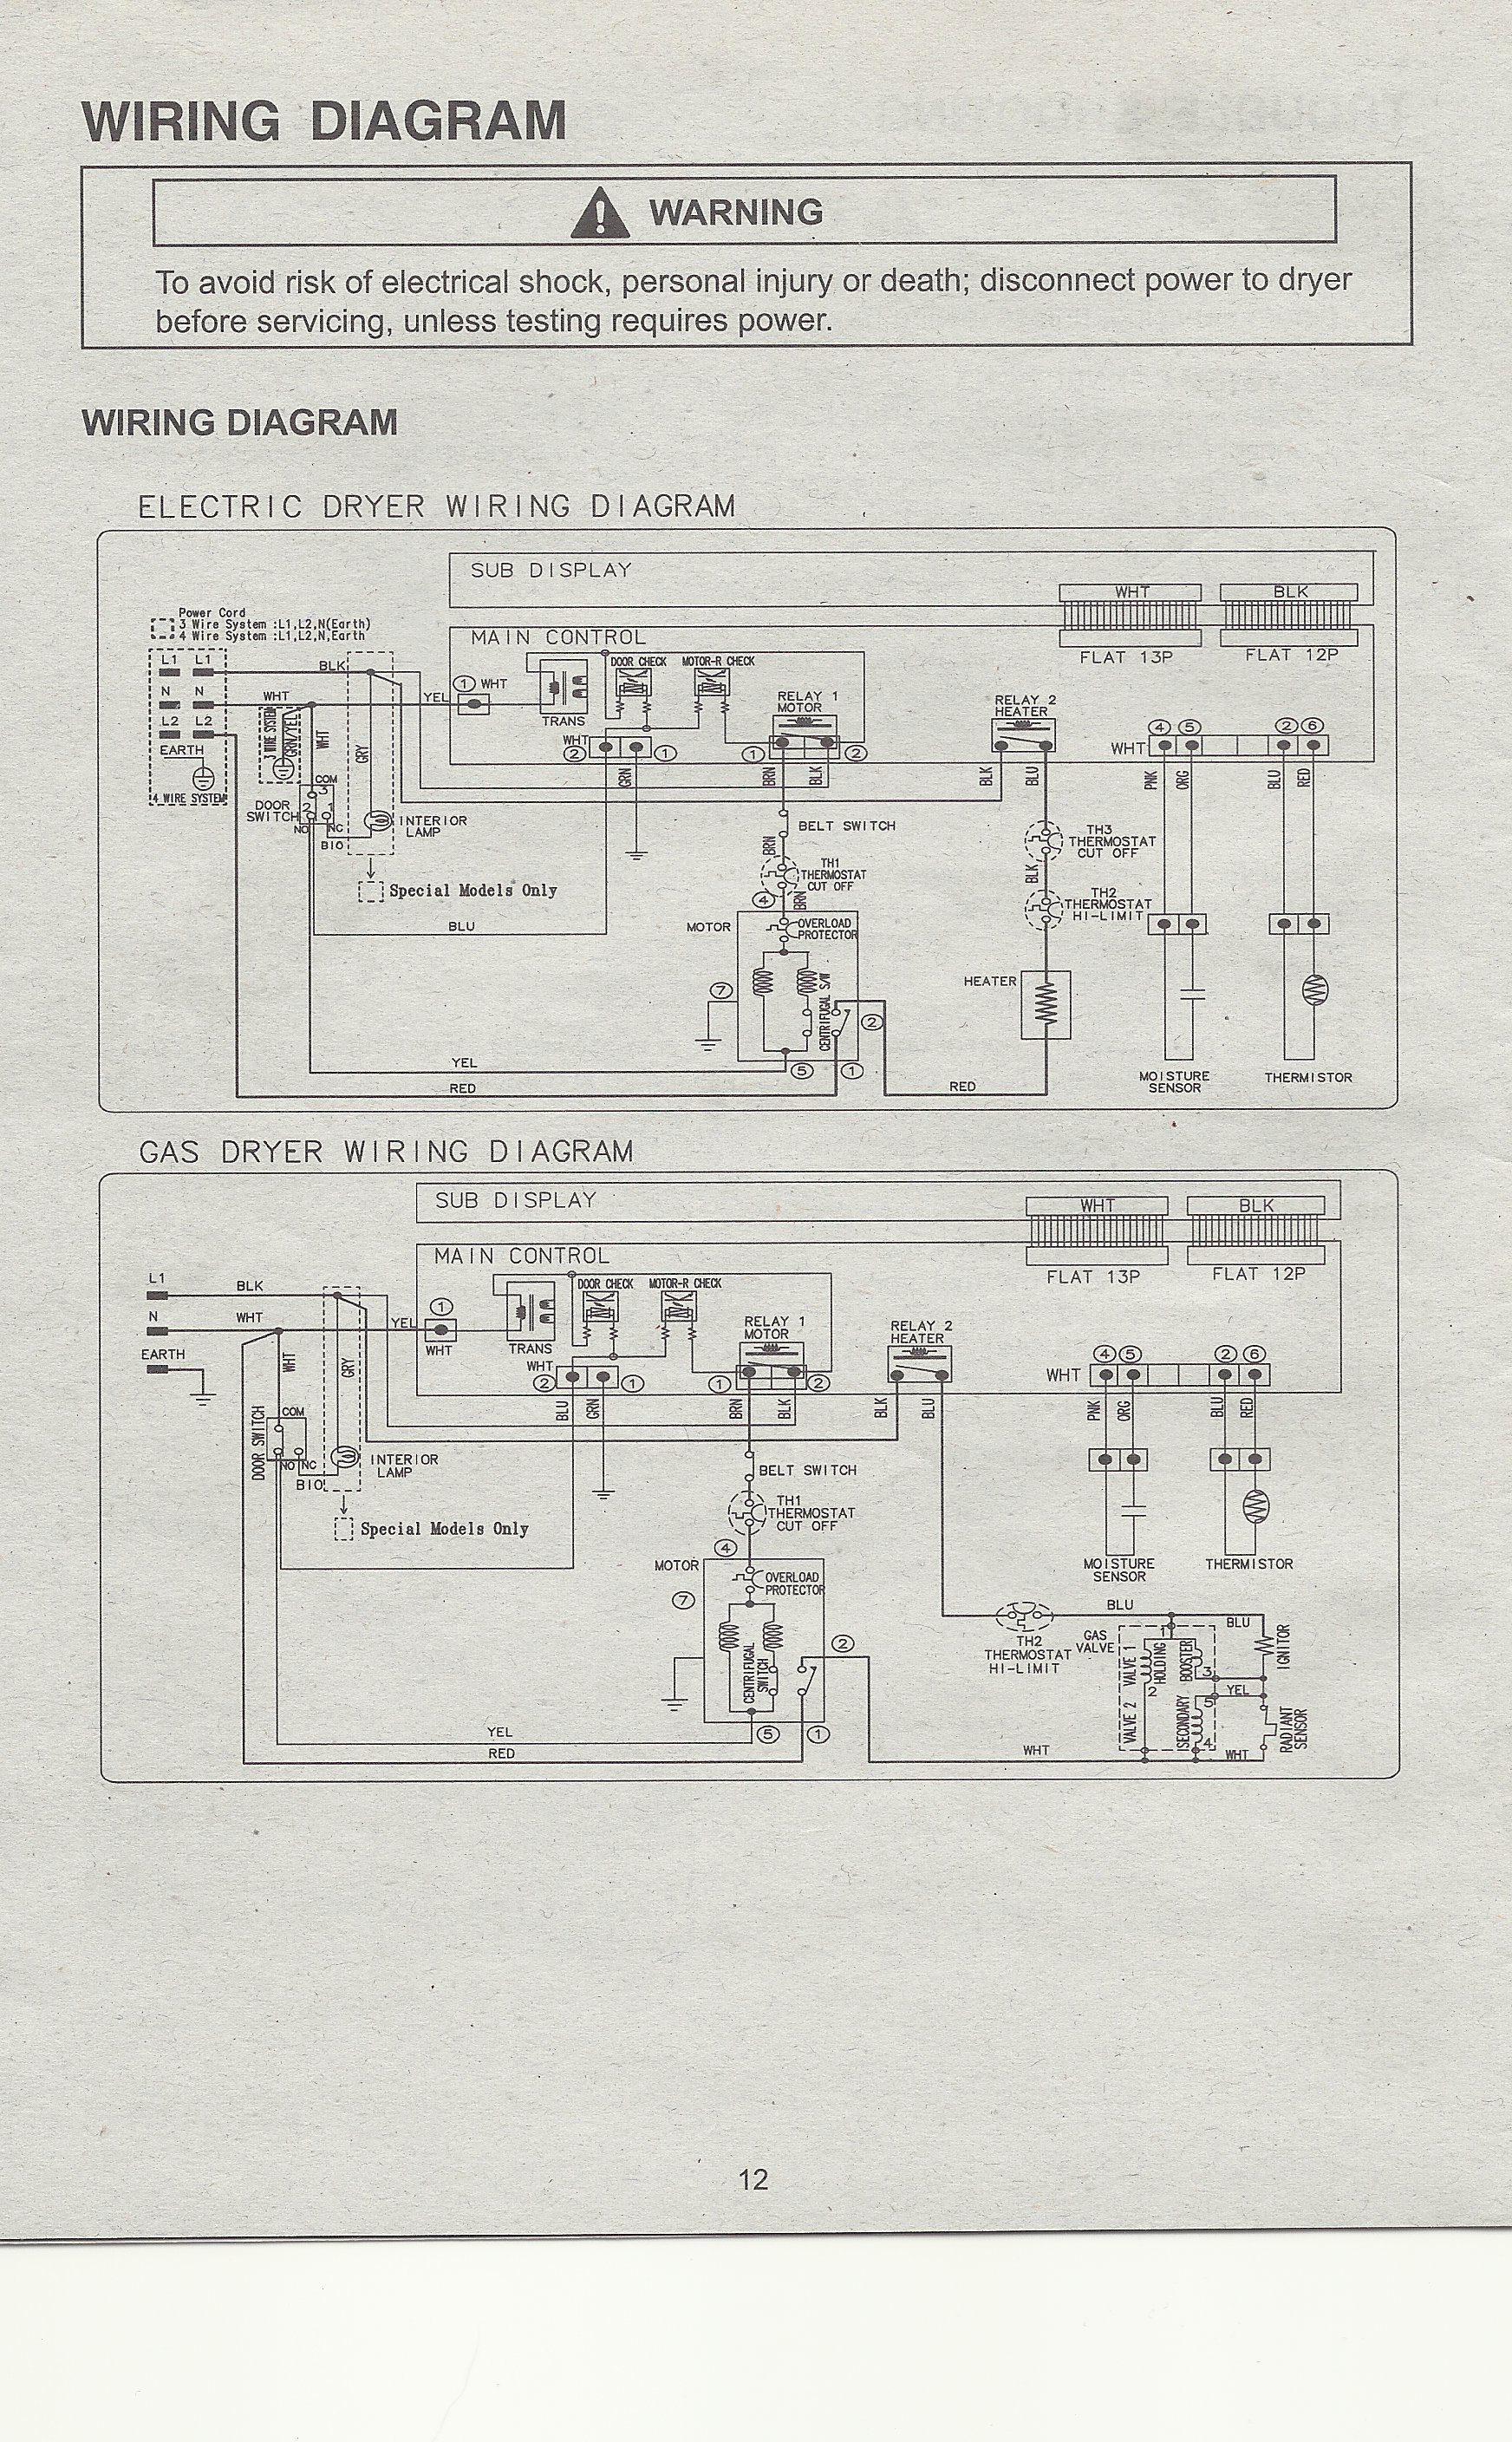 4 Wire Dryer Wiring Diagram